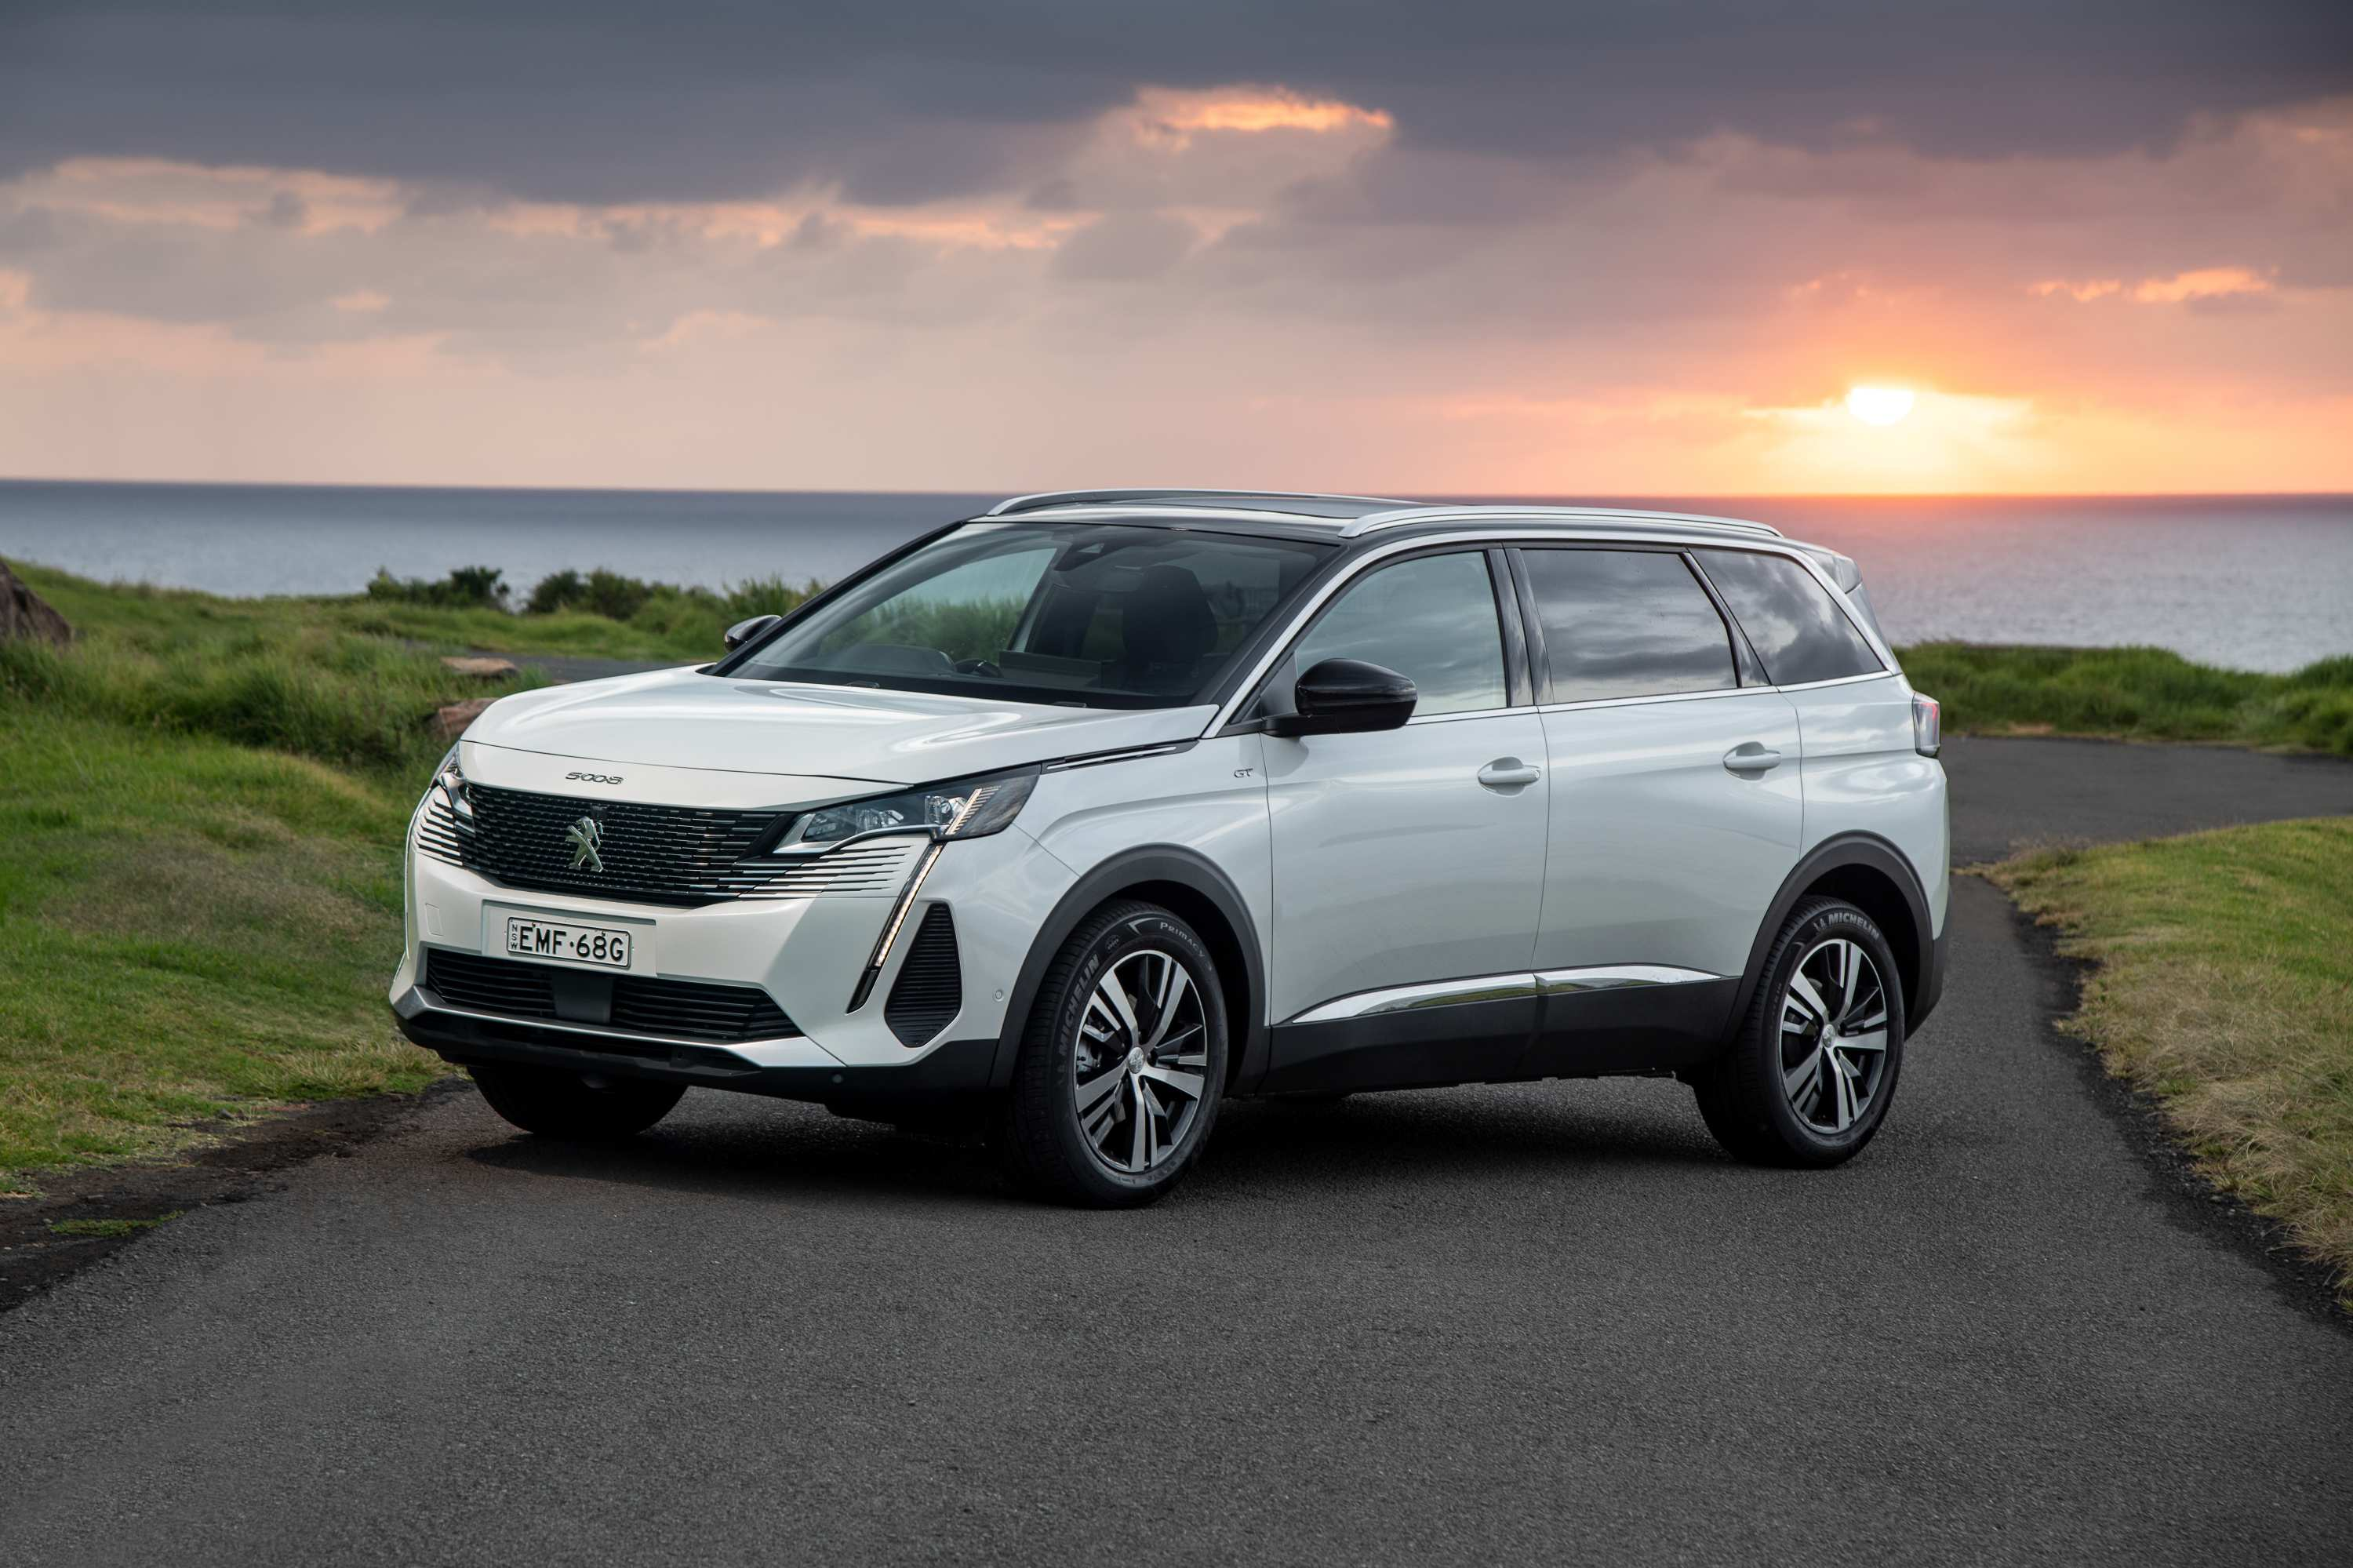 2021 Peugeot 5008 GT. (Photo Narrative Post/Matthias Engesser)